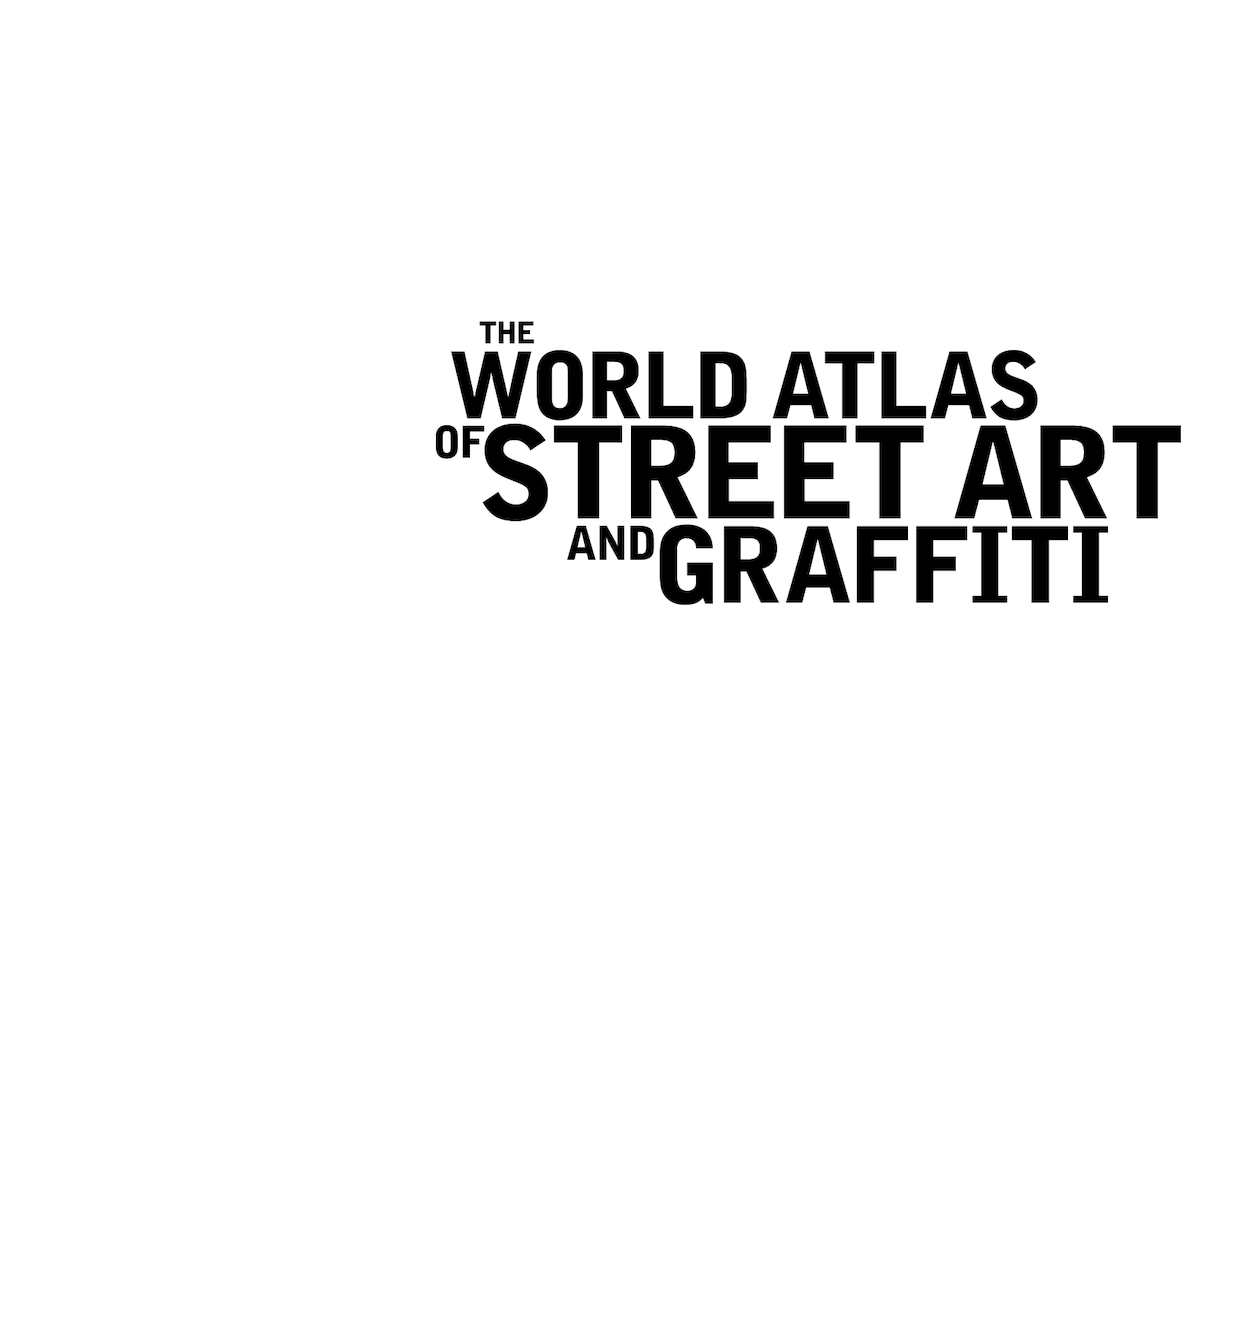 bff2cfd57 Calaméo - The World Atlas Of Street Art And Graffiti